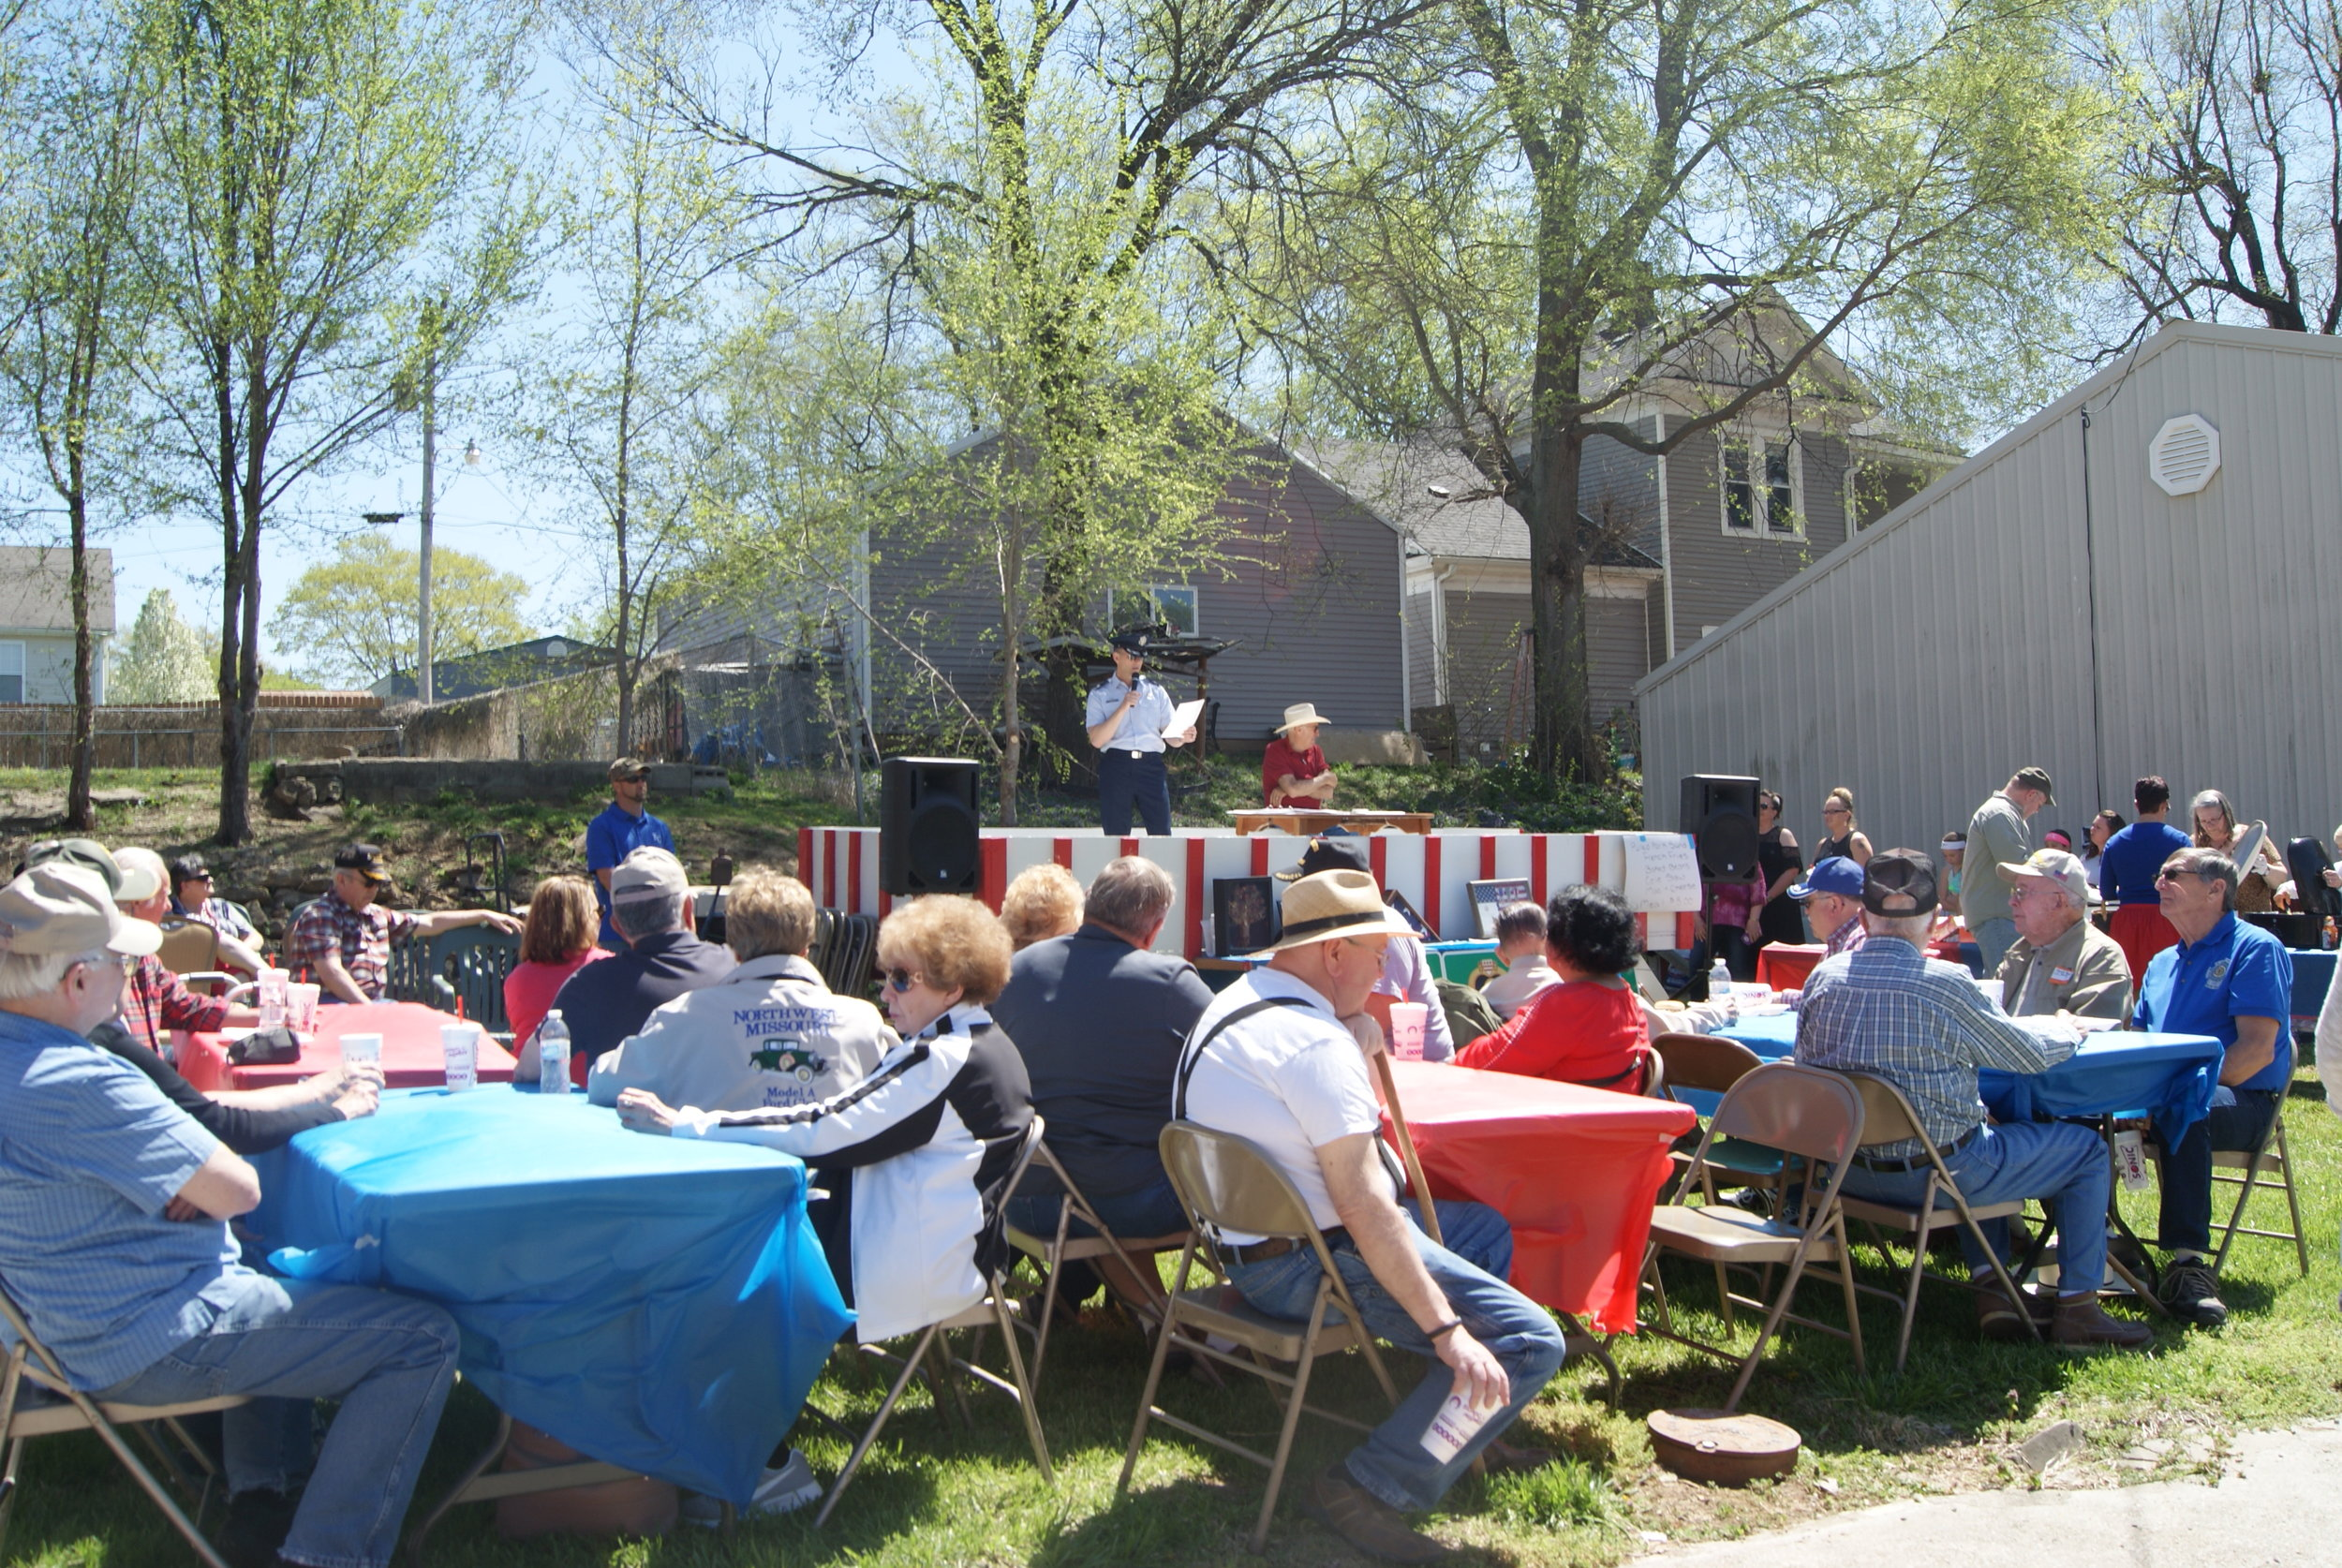 MICHAEL CRIPE/Special to the Citizen Air National Guard Colonel Byron B. Newell spoke during an event on Saturday, April 20, where Dearborn became a Purple Heart City. That was in conjunction with a veteran's recognition and parade.